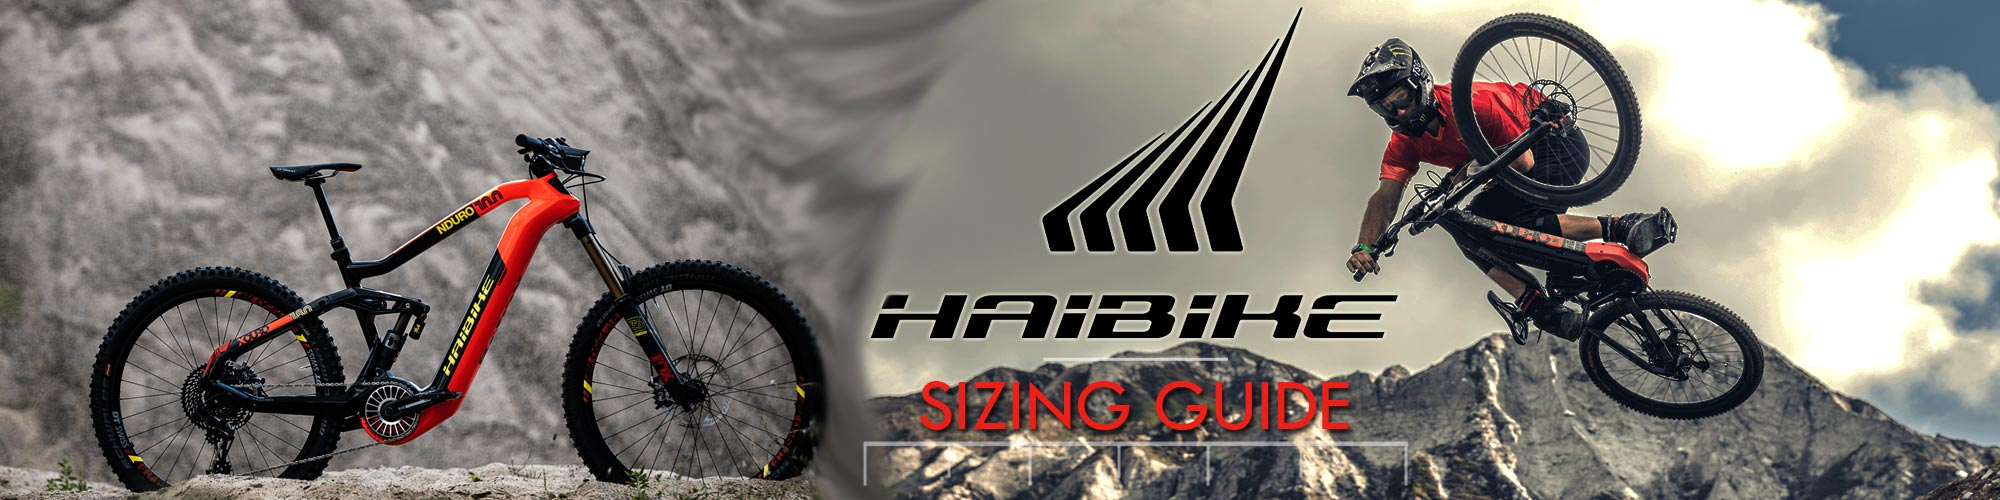 What size Haibike suits you best?